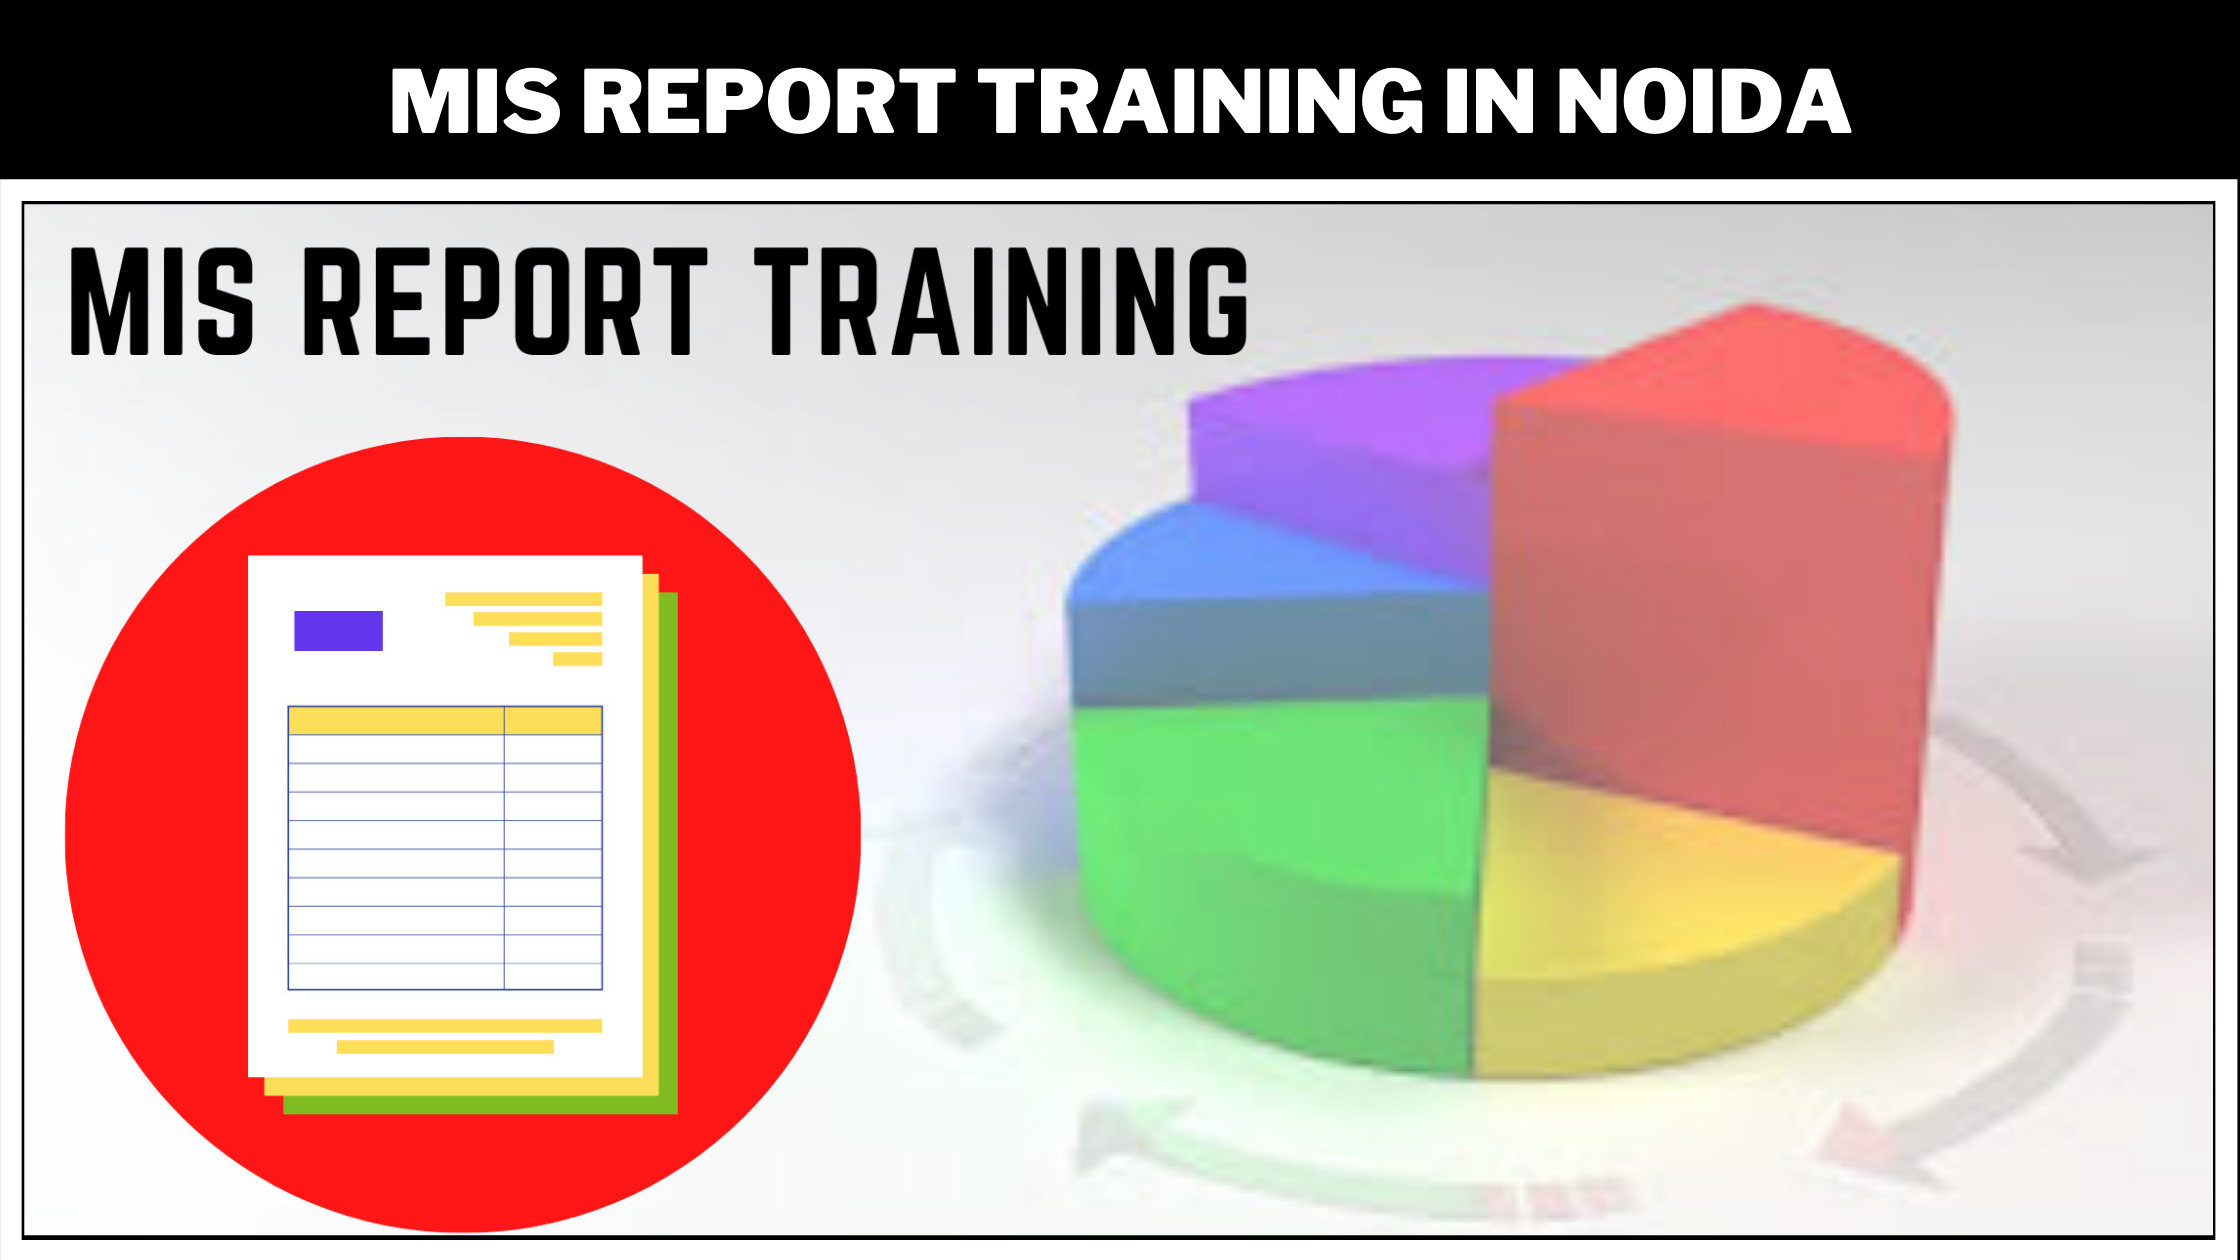 mis_report_training_in_noida-background.jpeg